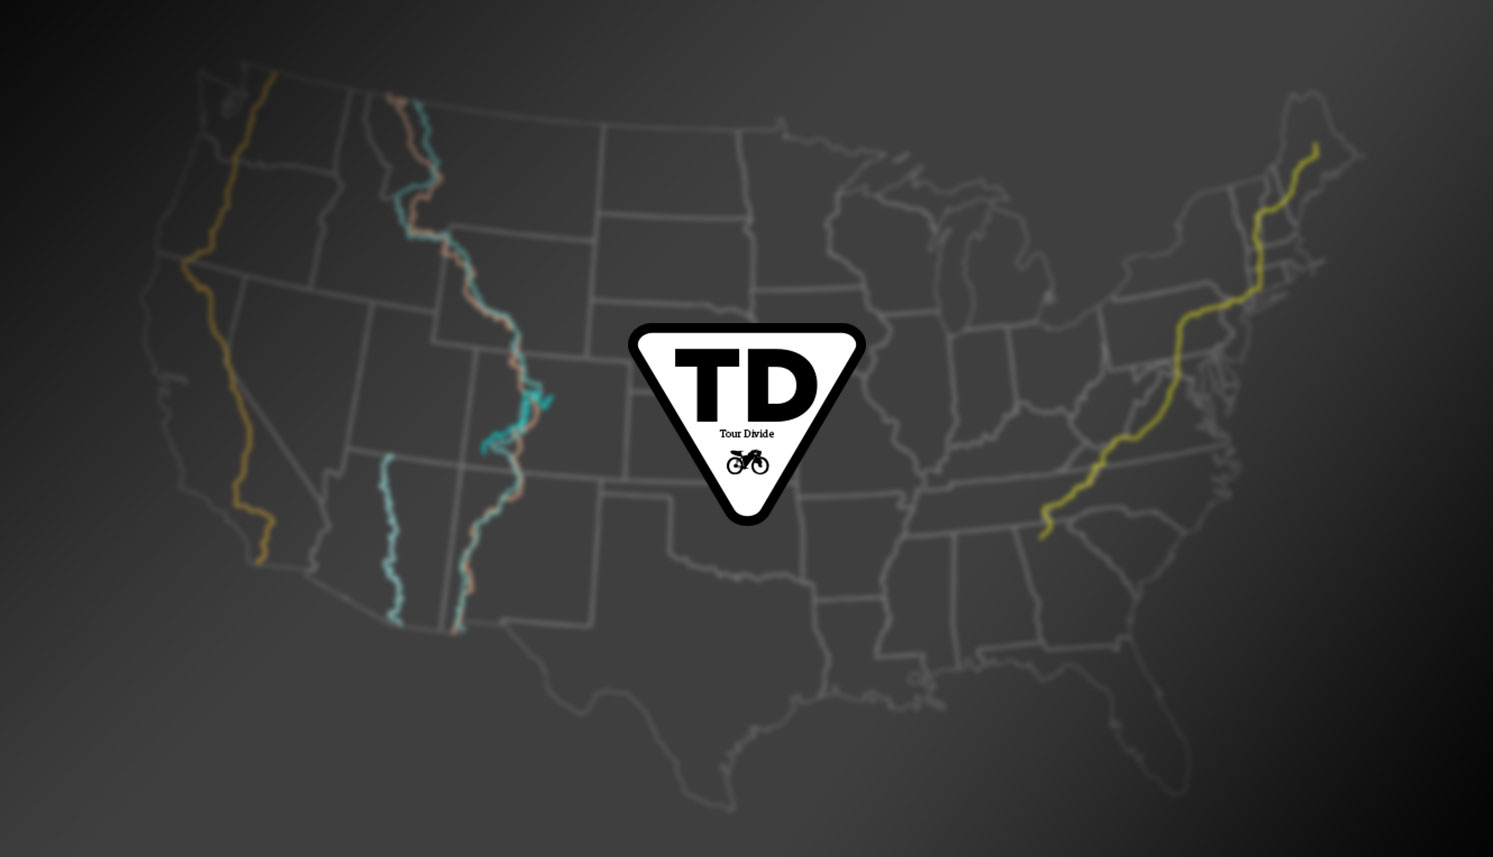 Tour Divide map logo triple crown